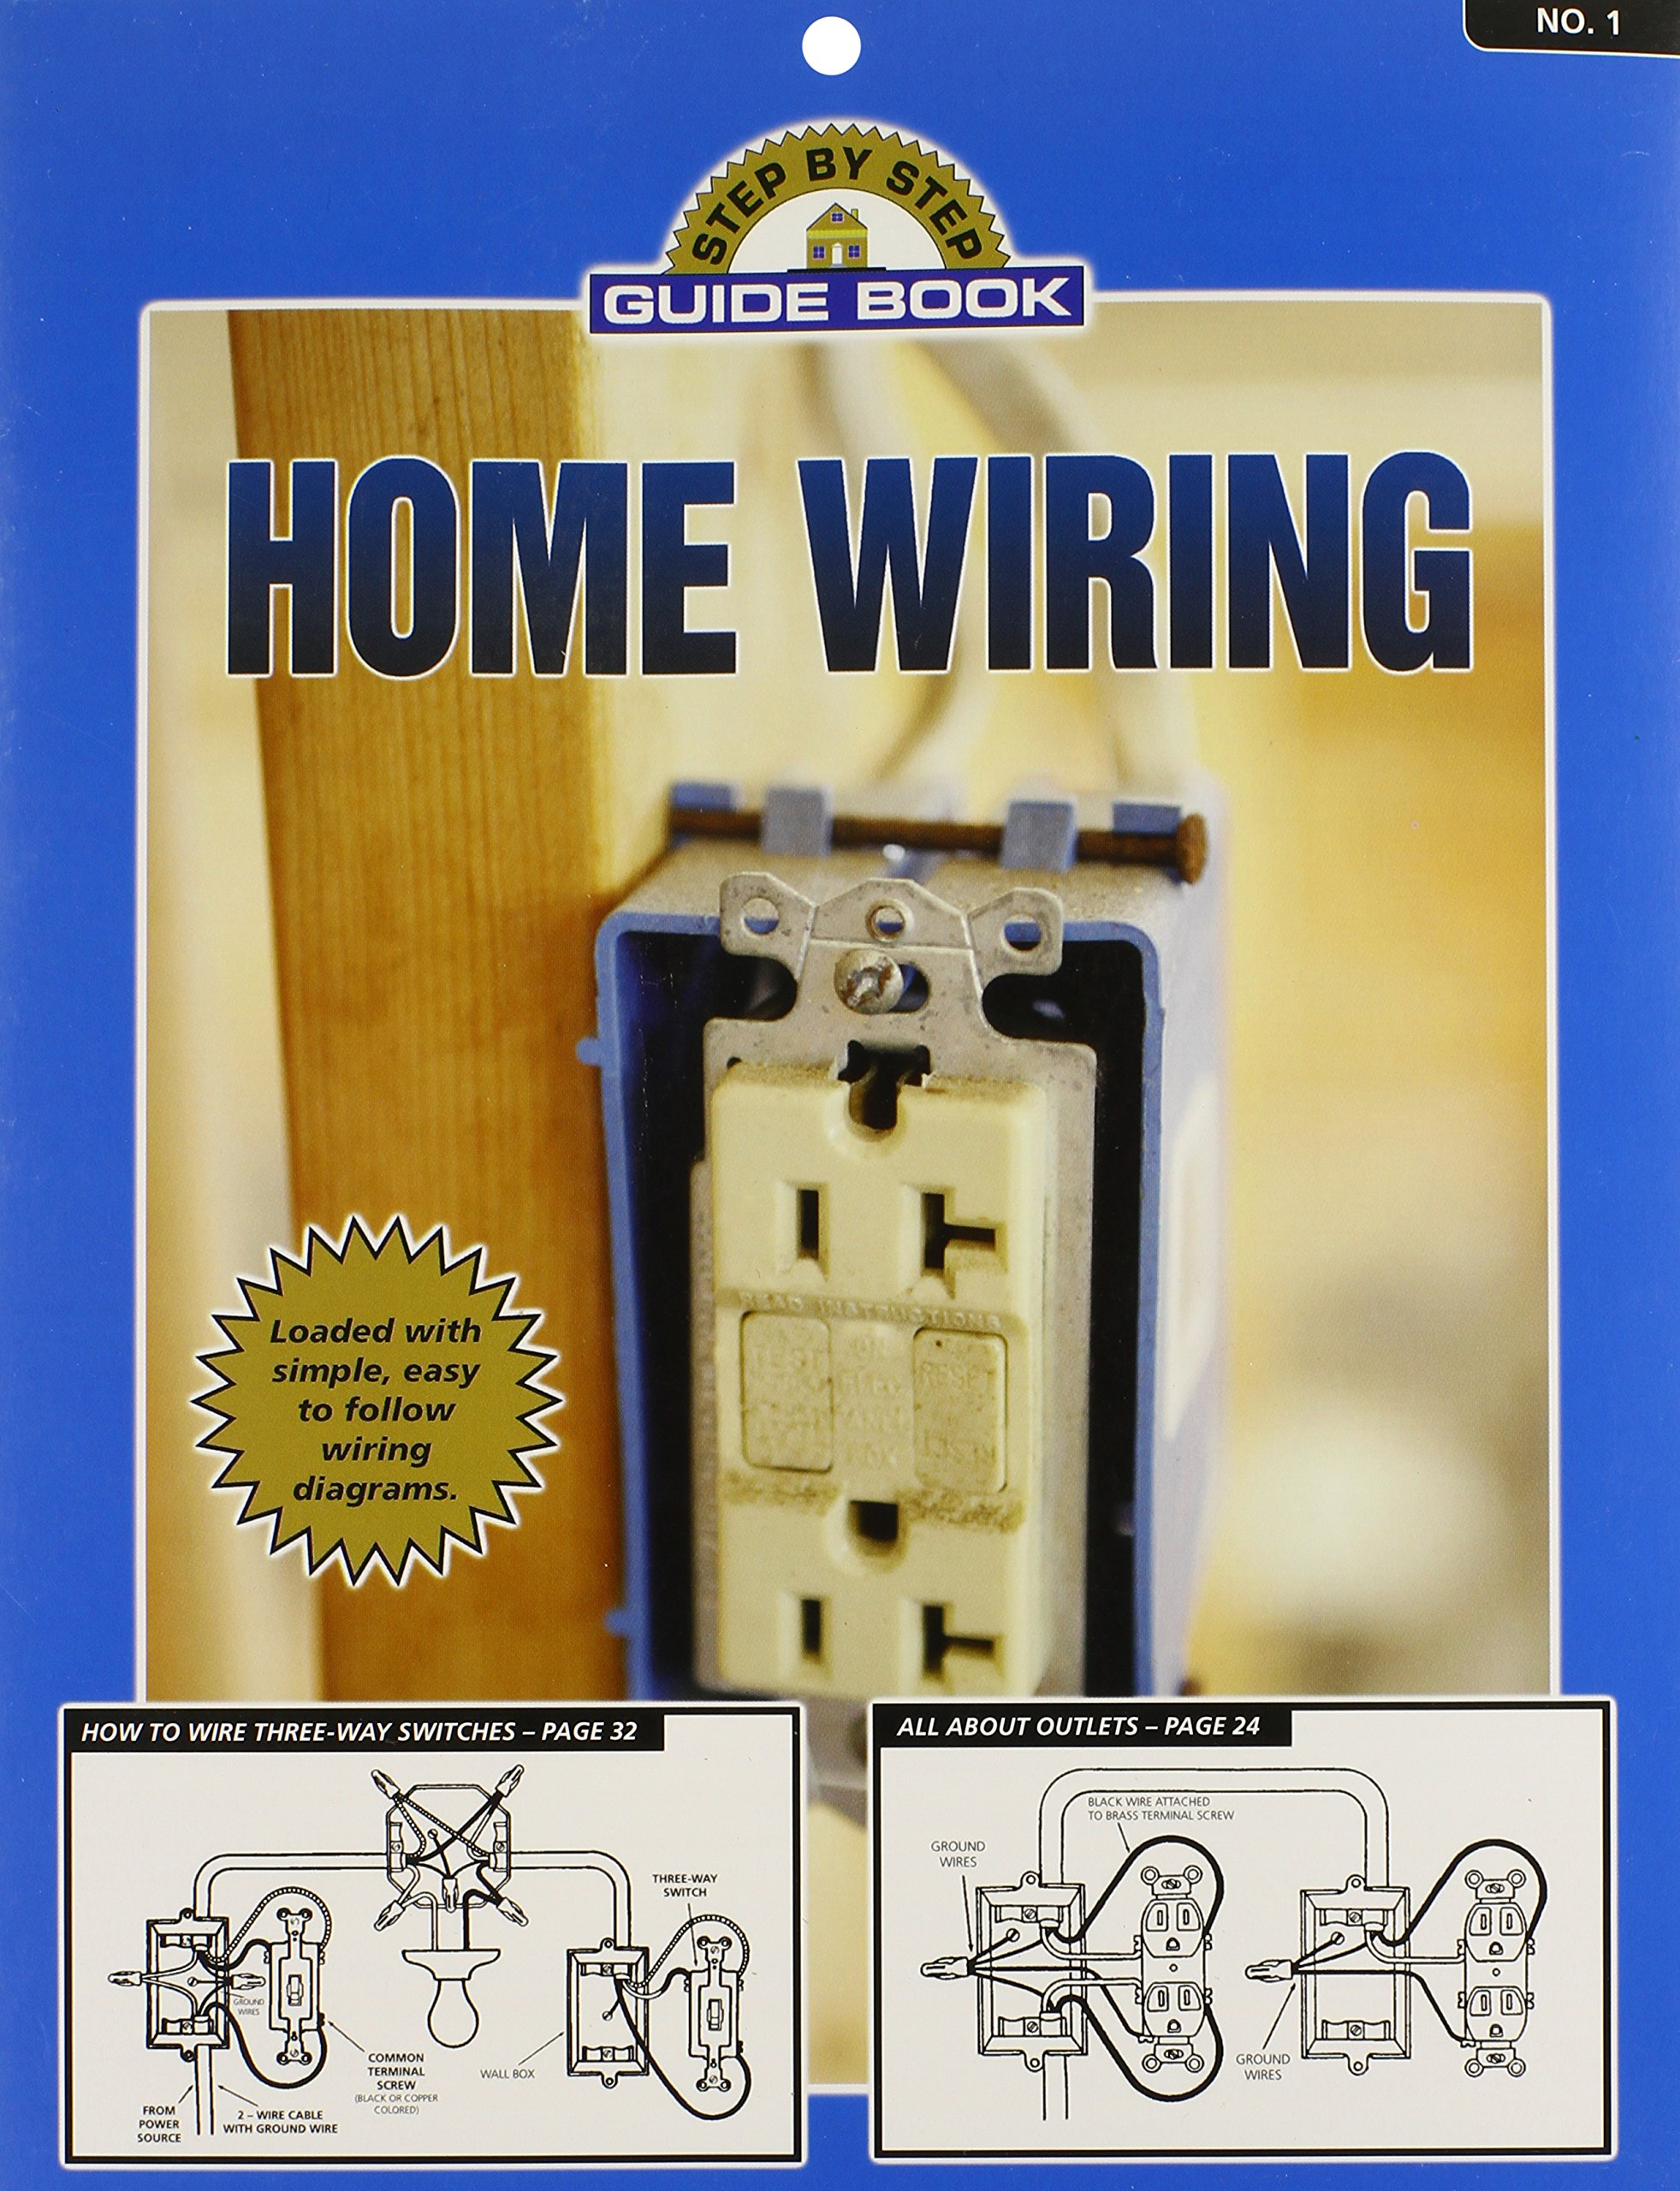 Step by Step Guide Book on Home Wiring: Ray McReynolds, Elaine McReynolds,  Shane E. Richins: 9780961920104: Amazon.com: Books